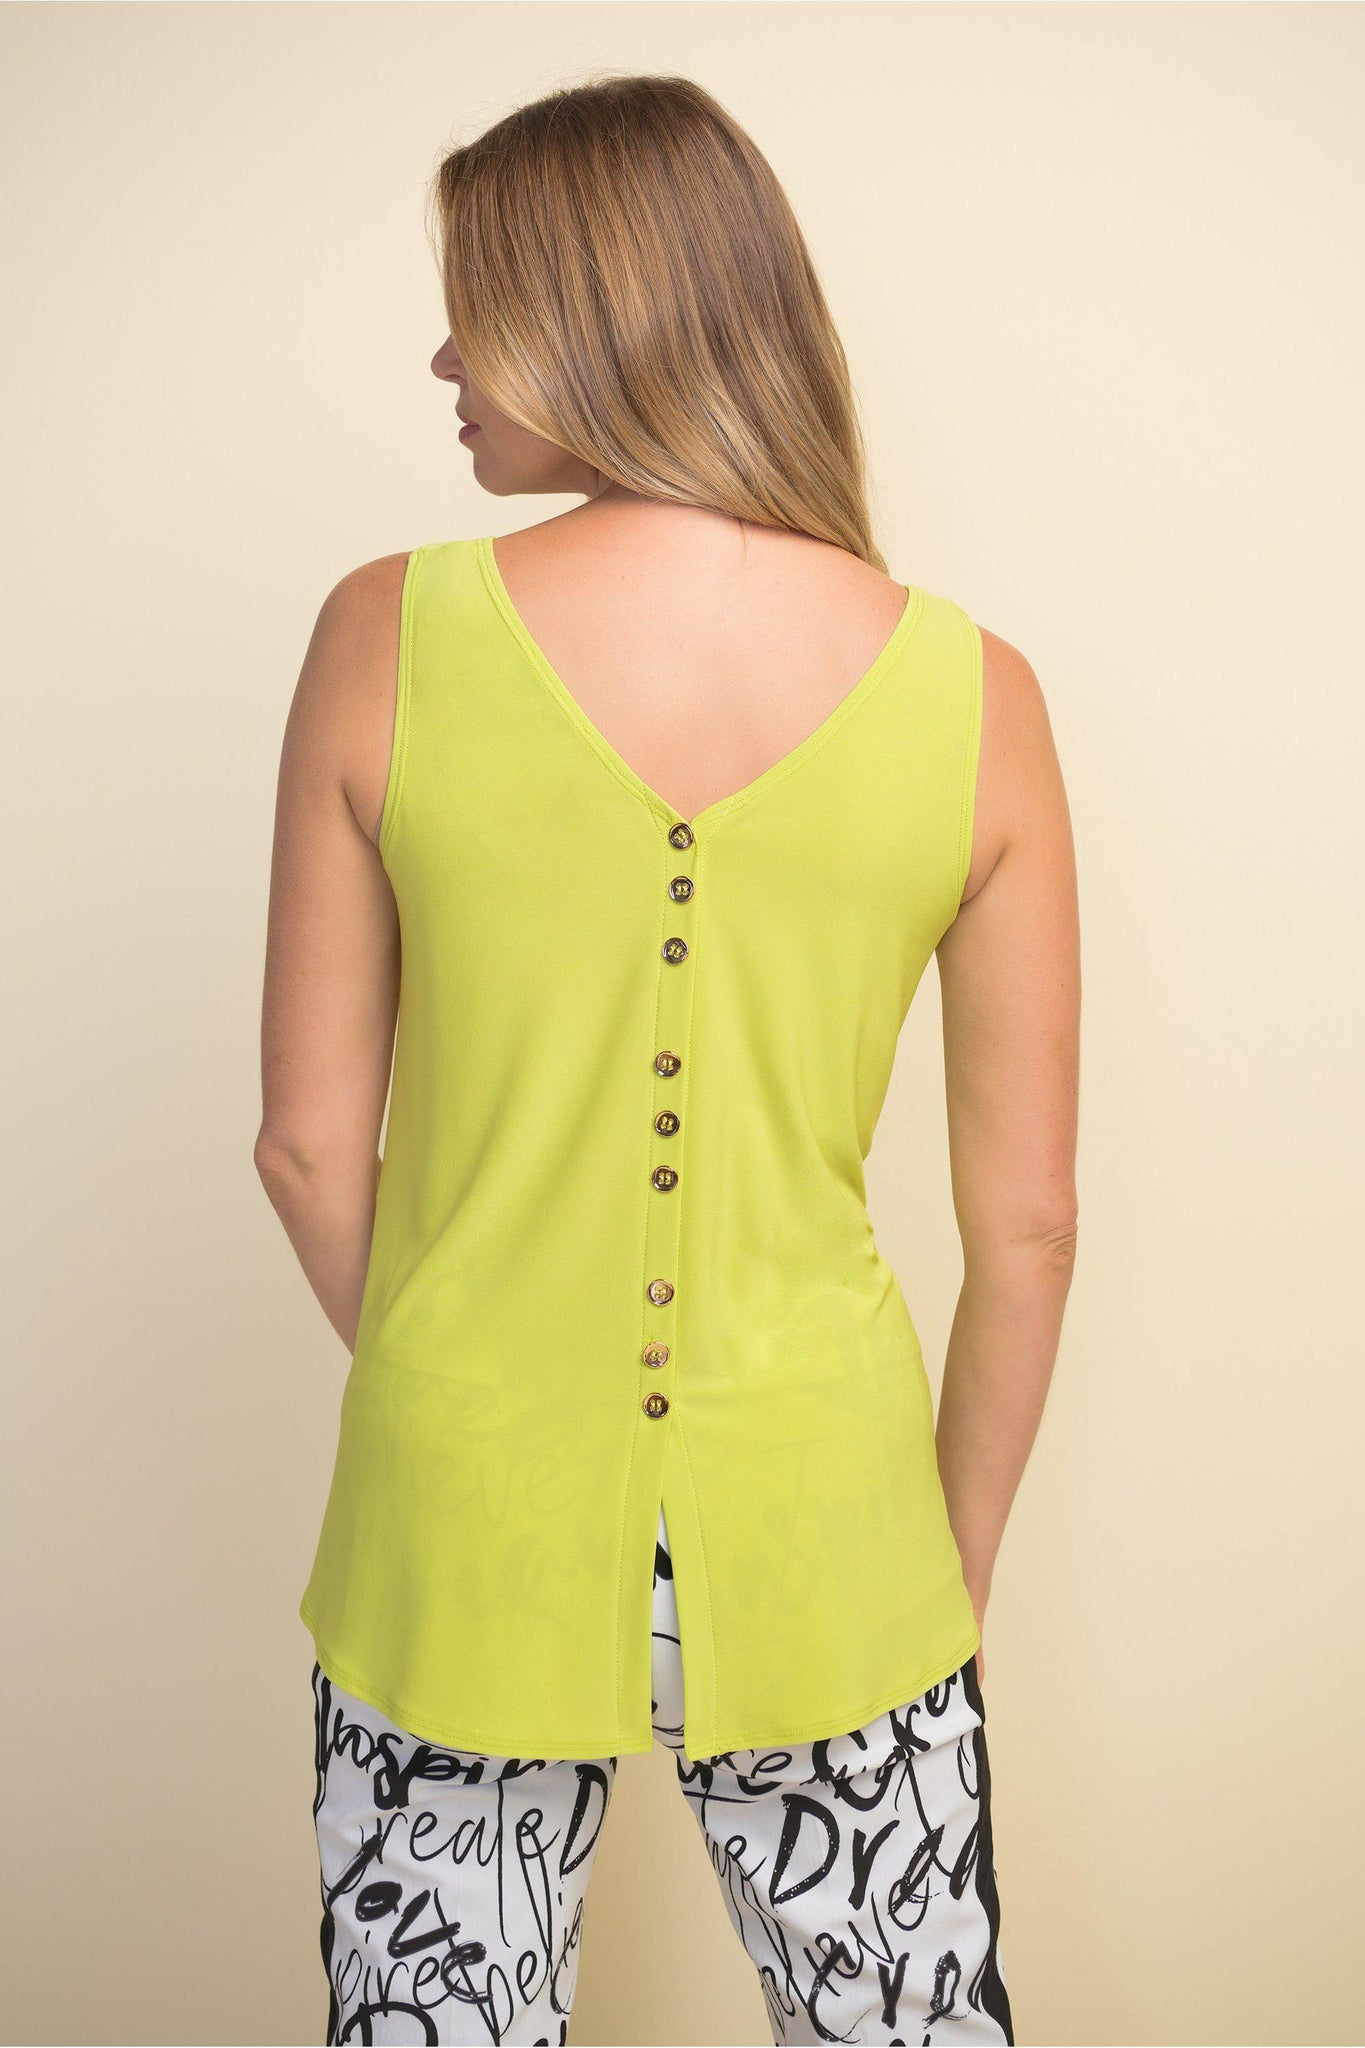 Back Button Top by Joseph Ribkoff style {{product.sku}} - buy from Weekends on 2nd Ave at {{shop.url}} or visit our shop at Second Ave Plaza on the corner of Beaufort Street & Second Avenue Mount Lawley WA